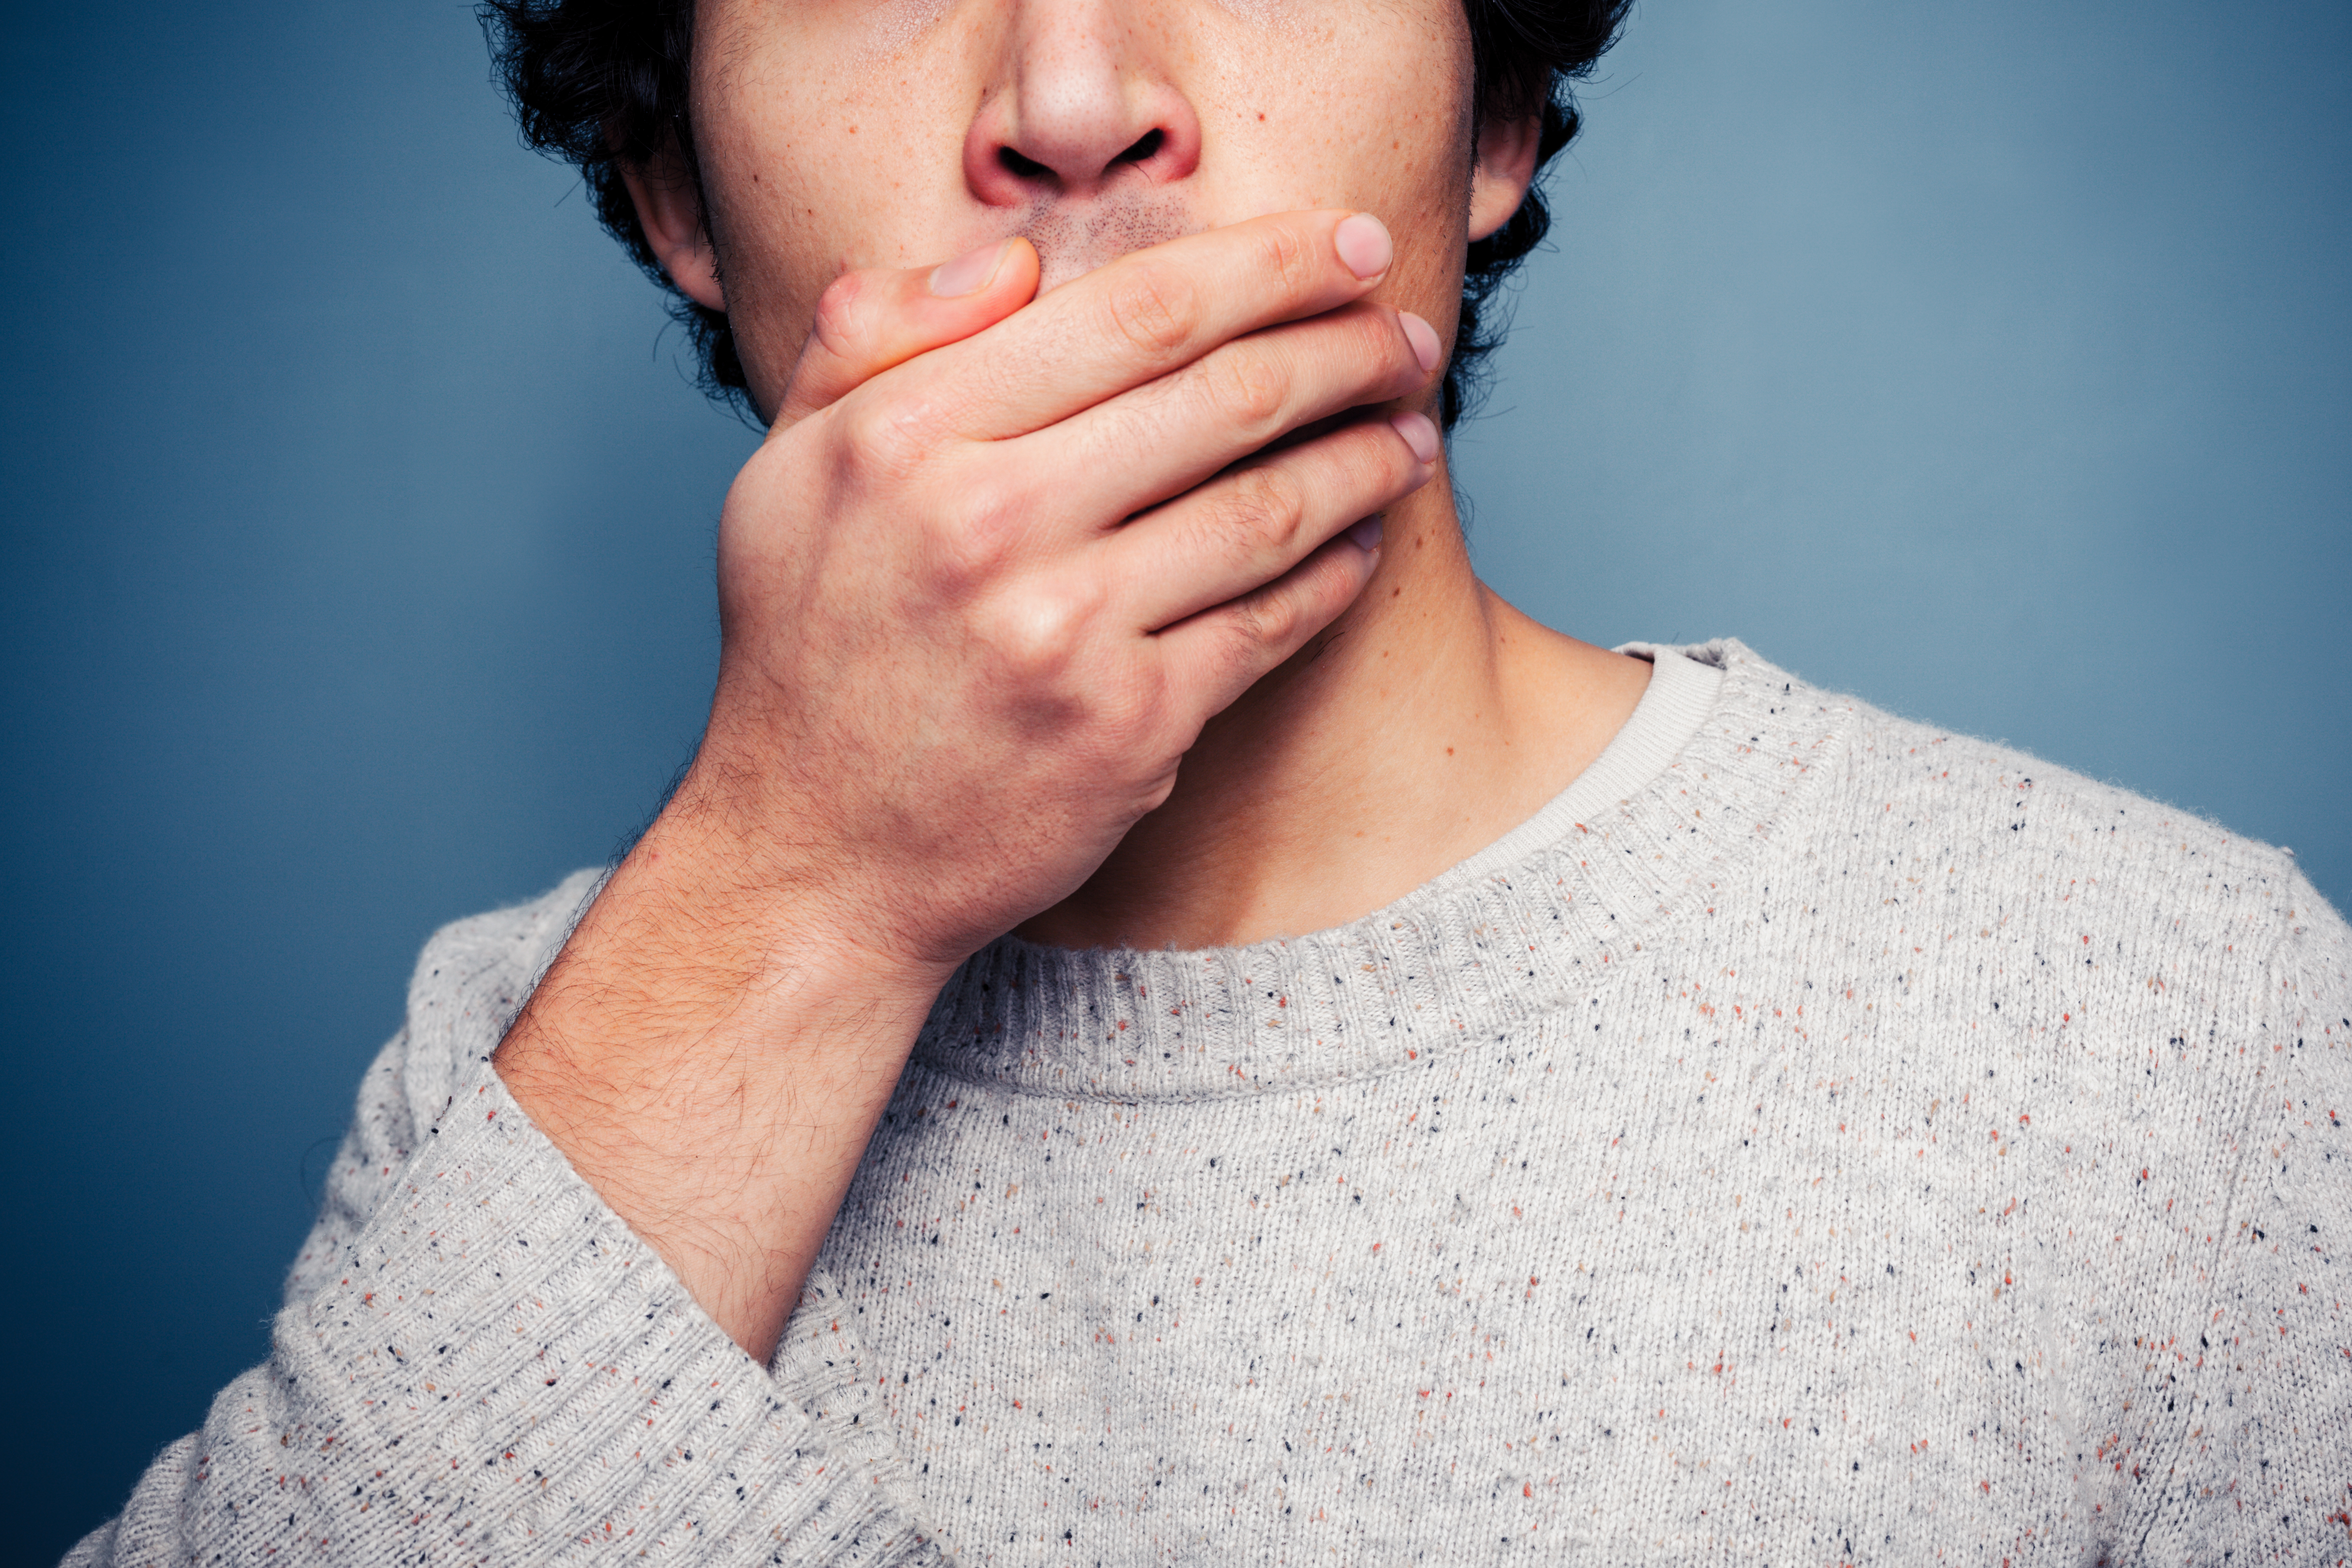 Shocked young man covering his mouth